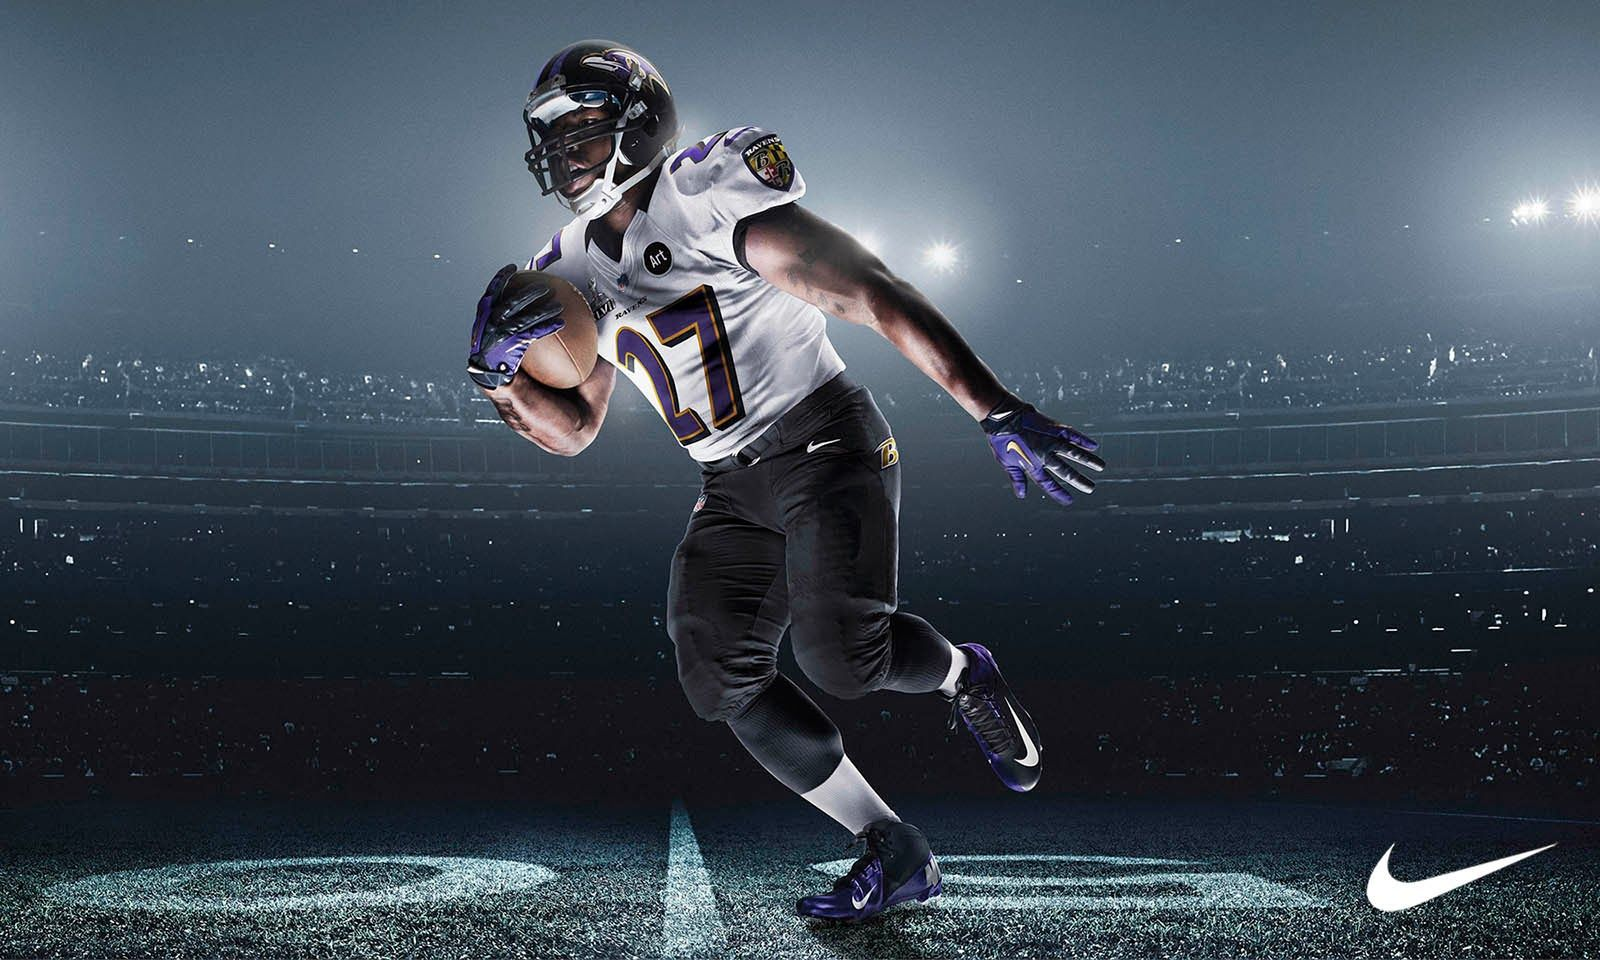 Pin by AMB Wallpapers on NFL HD Wallpapers Pinterest